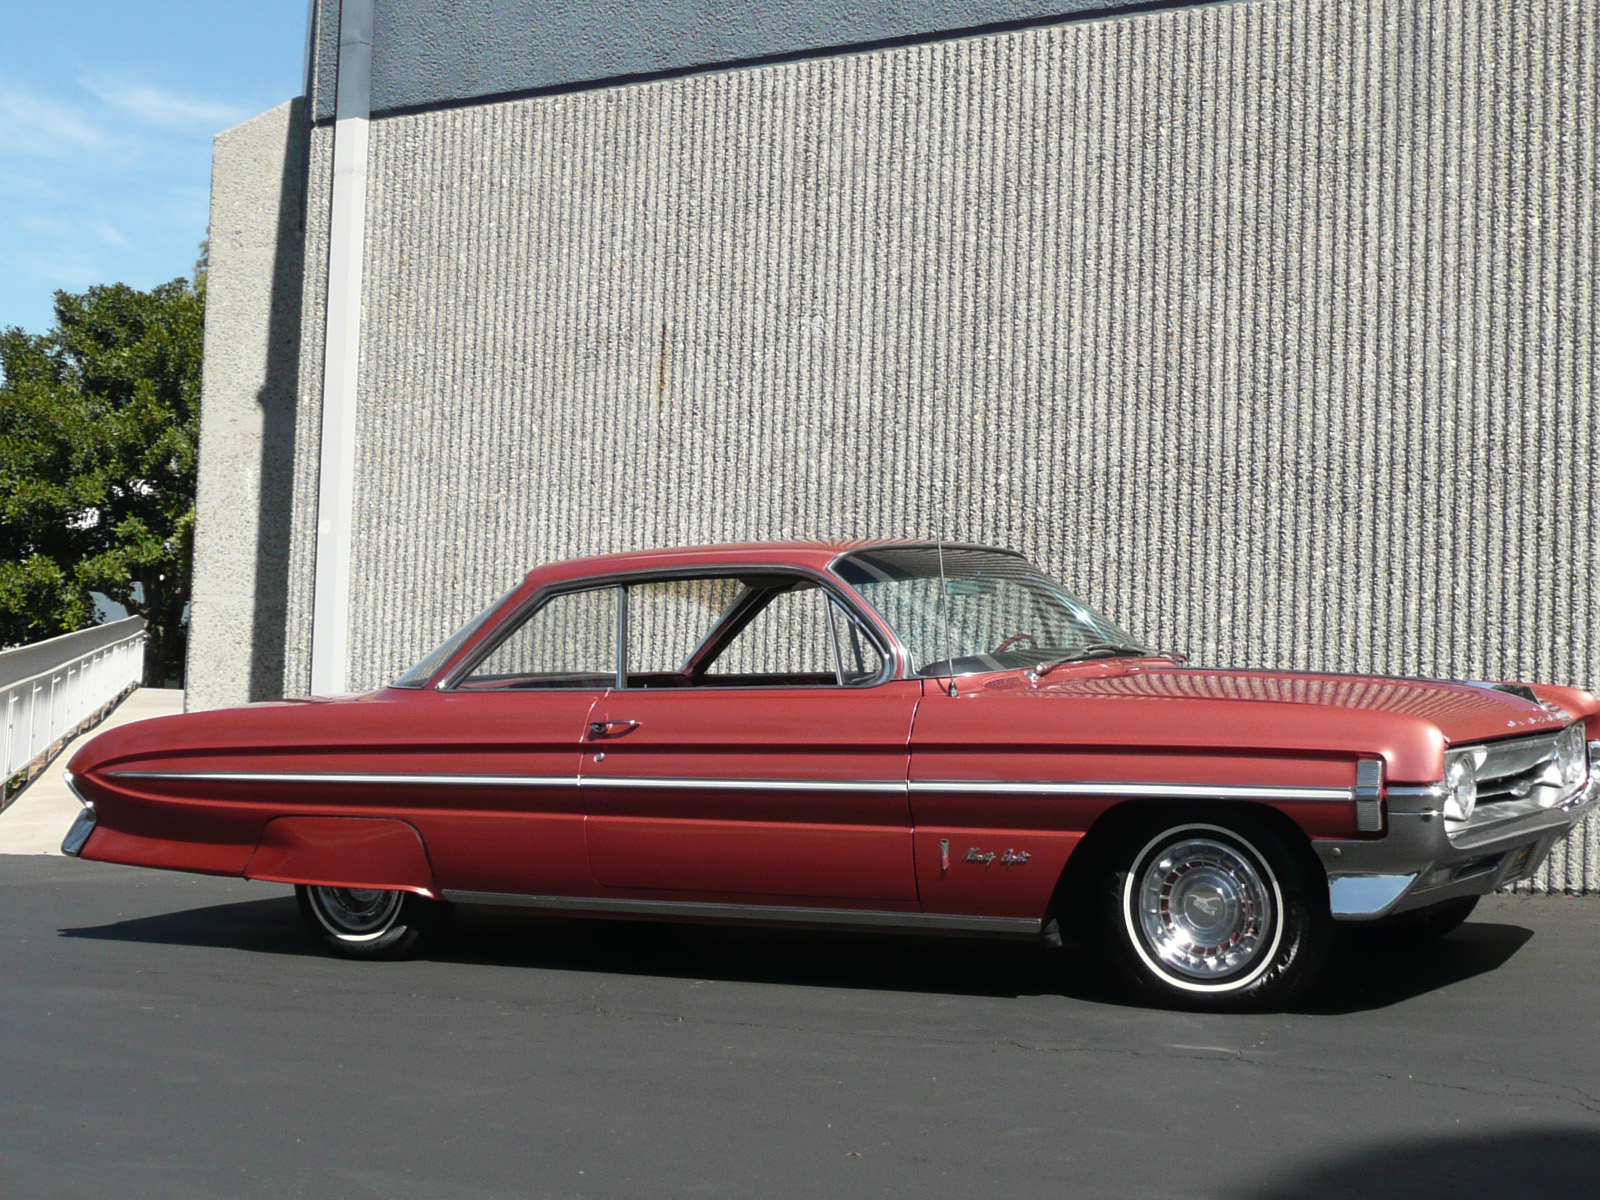 1961 OLDSMOBILE 98 HOLIDAY COUPE - Front 3/4 - 80982